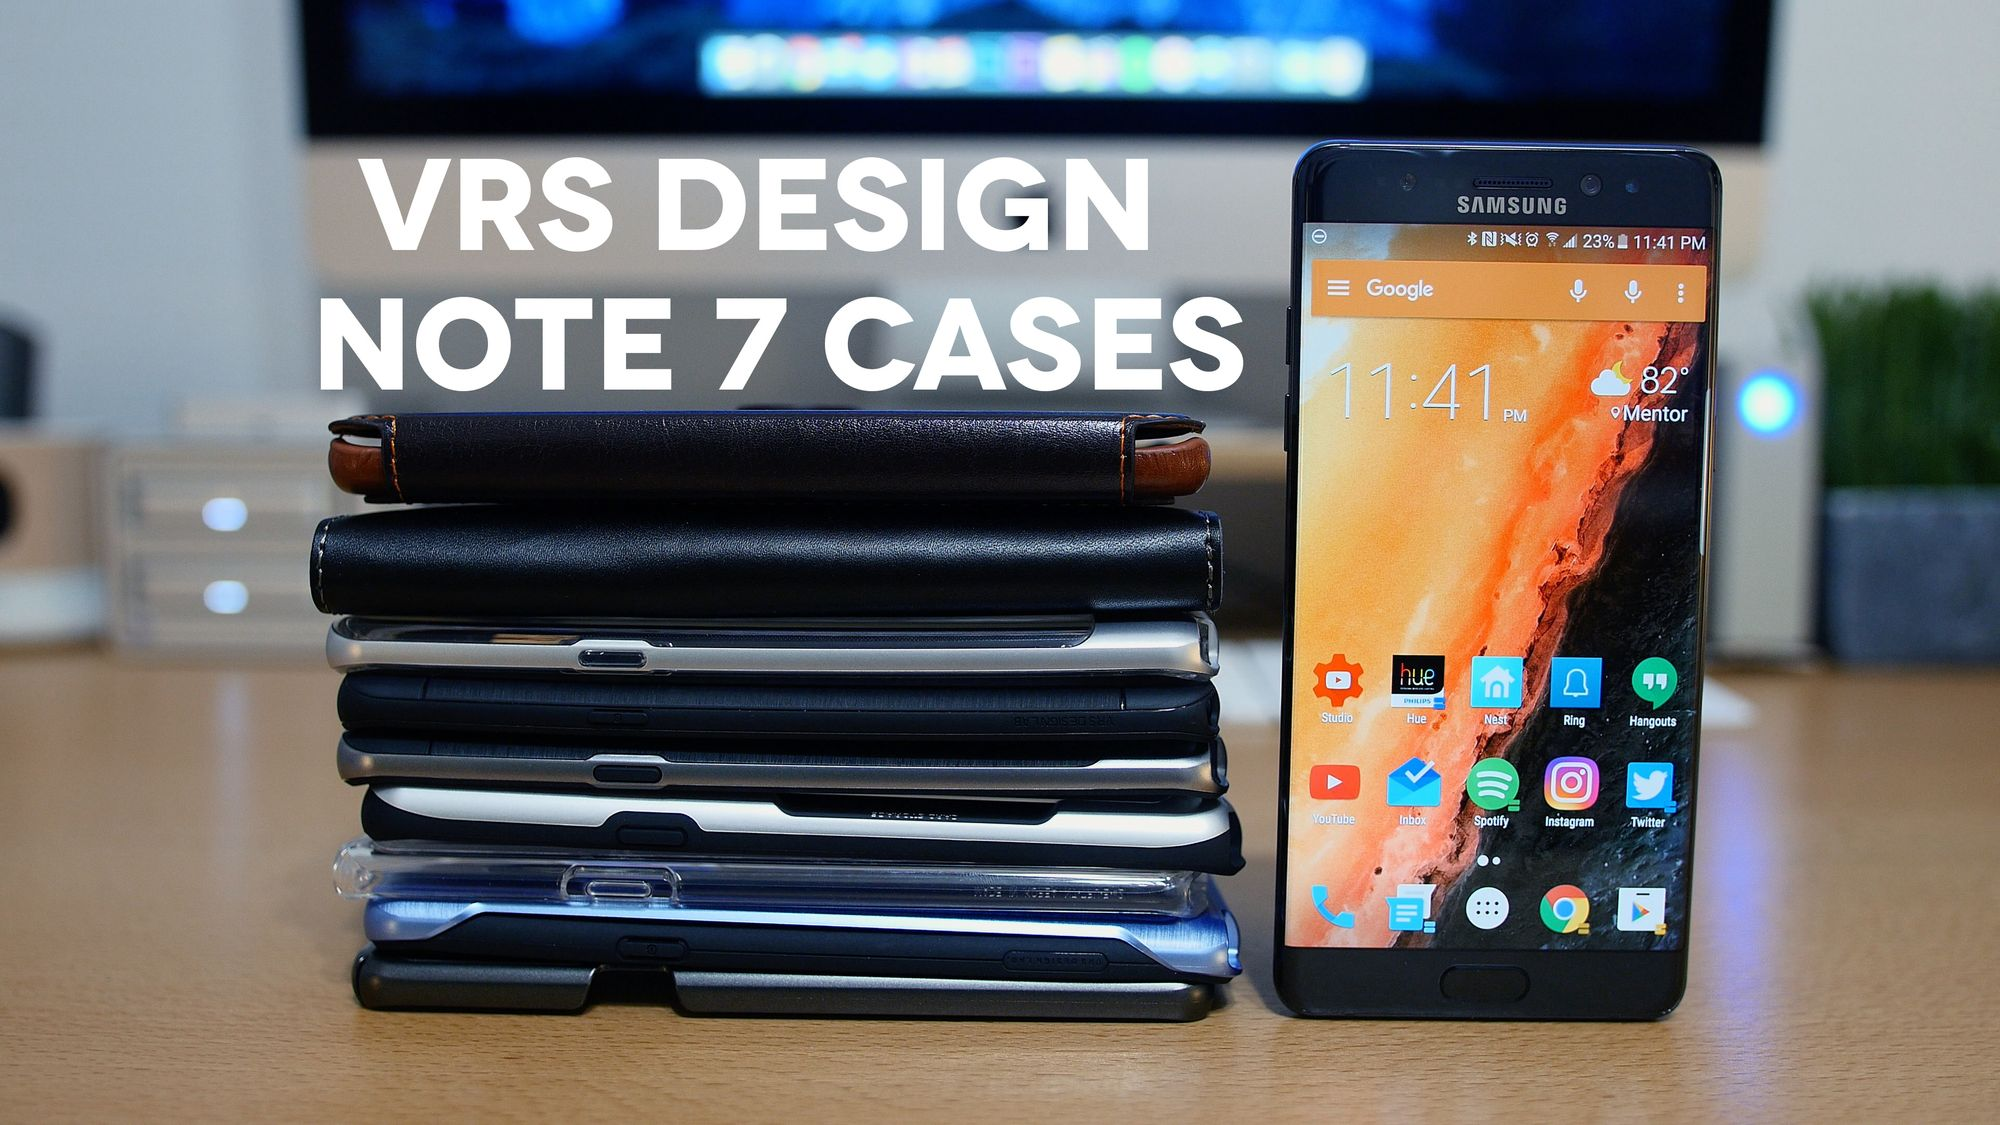 The Best Cases for Your Samsung Galaxy Note 7 from VRS Design